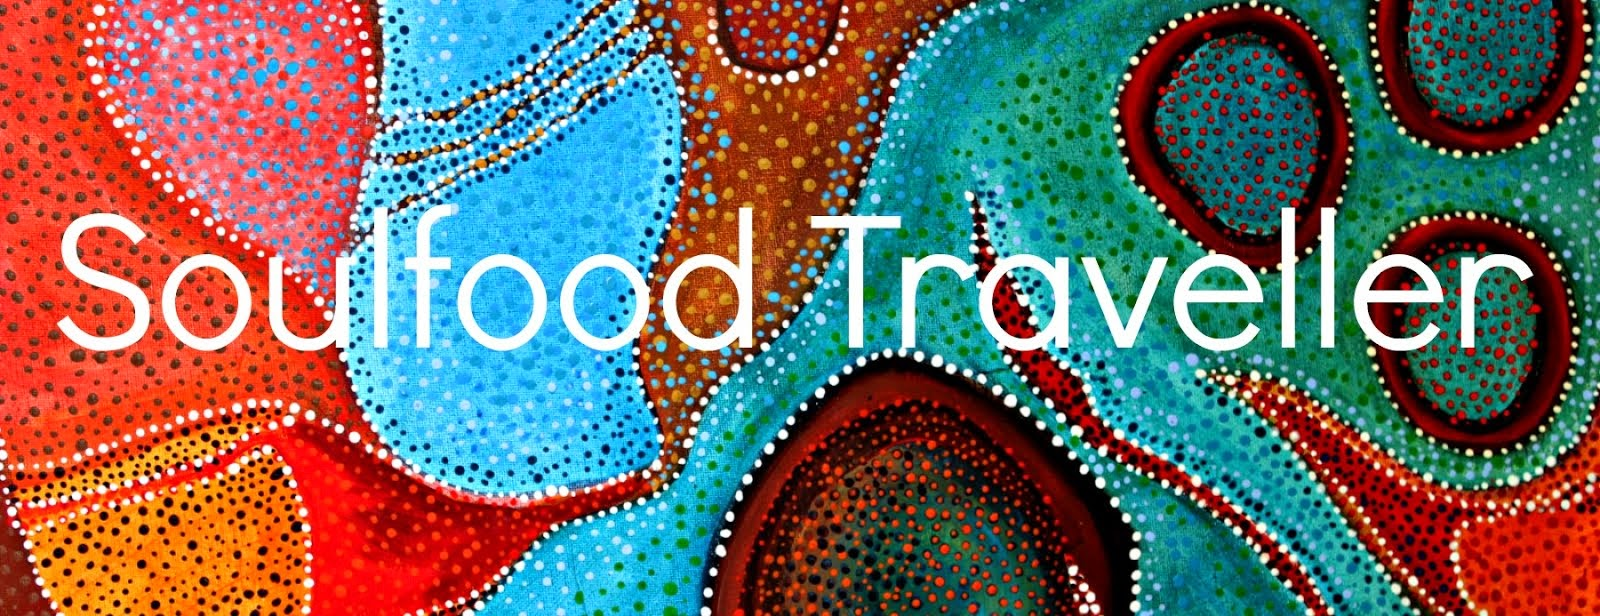 soulfood traveller